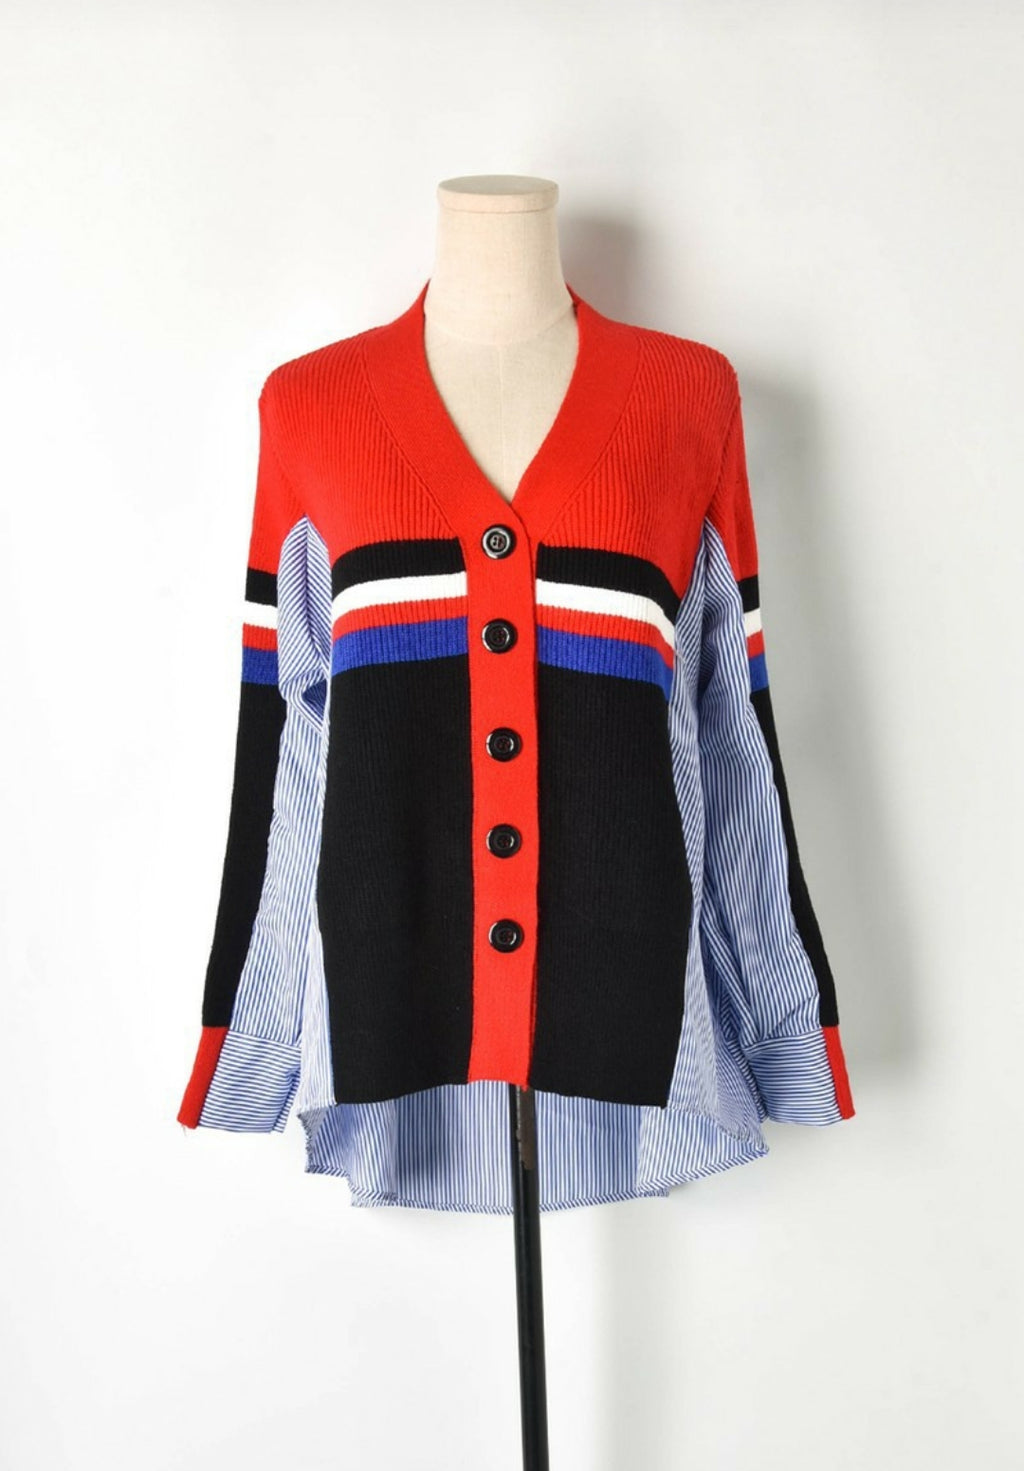 Cardigan Front Shirt Back Top